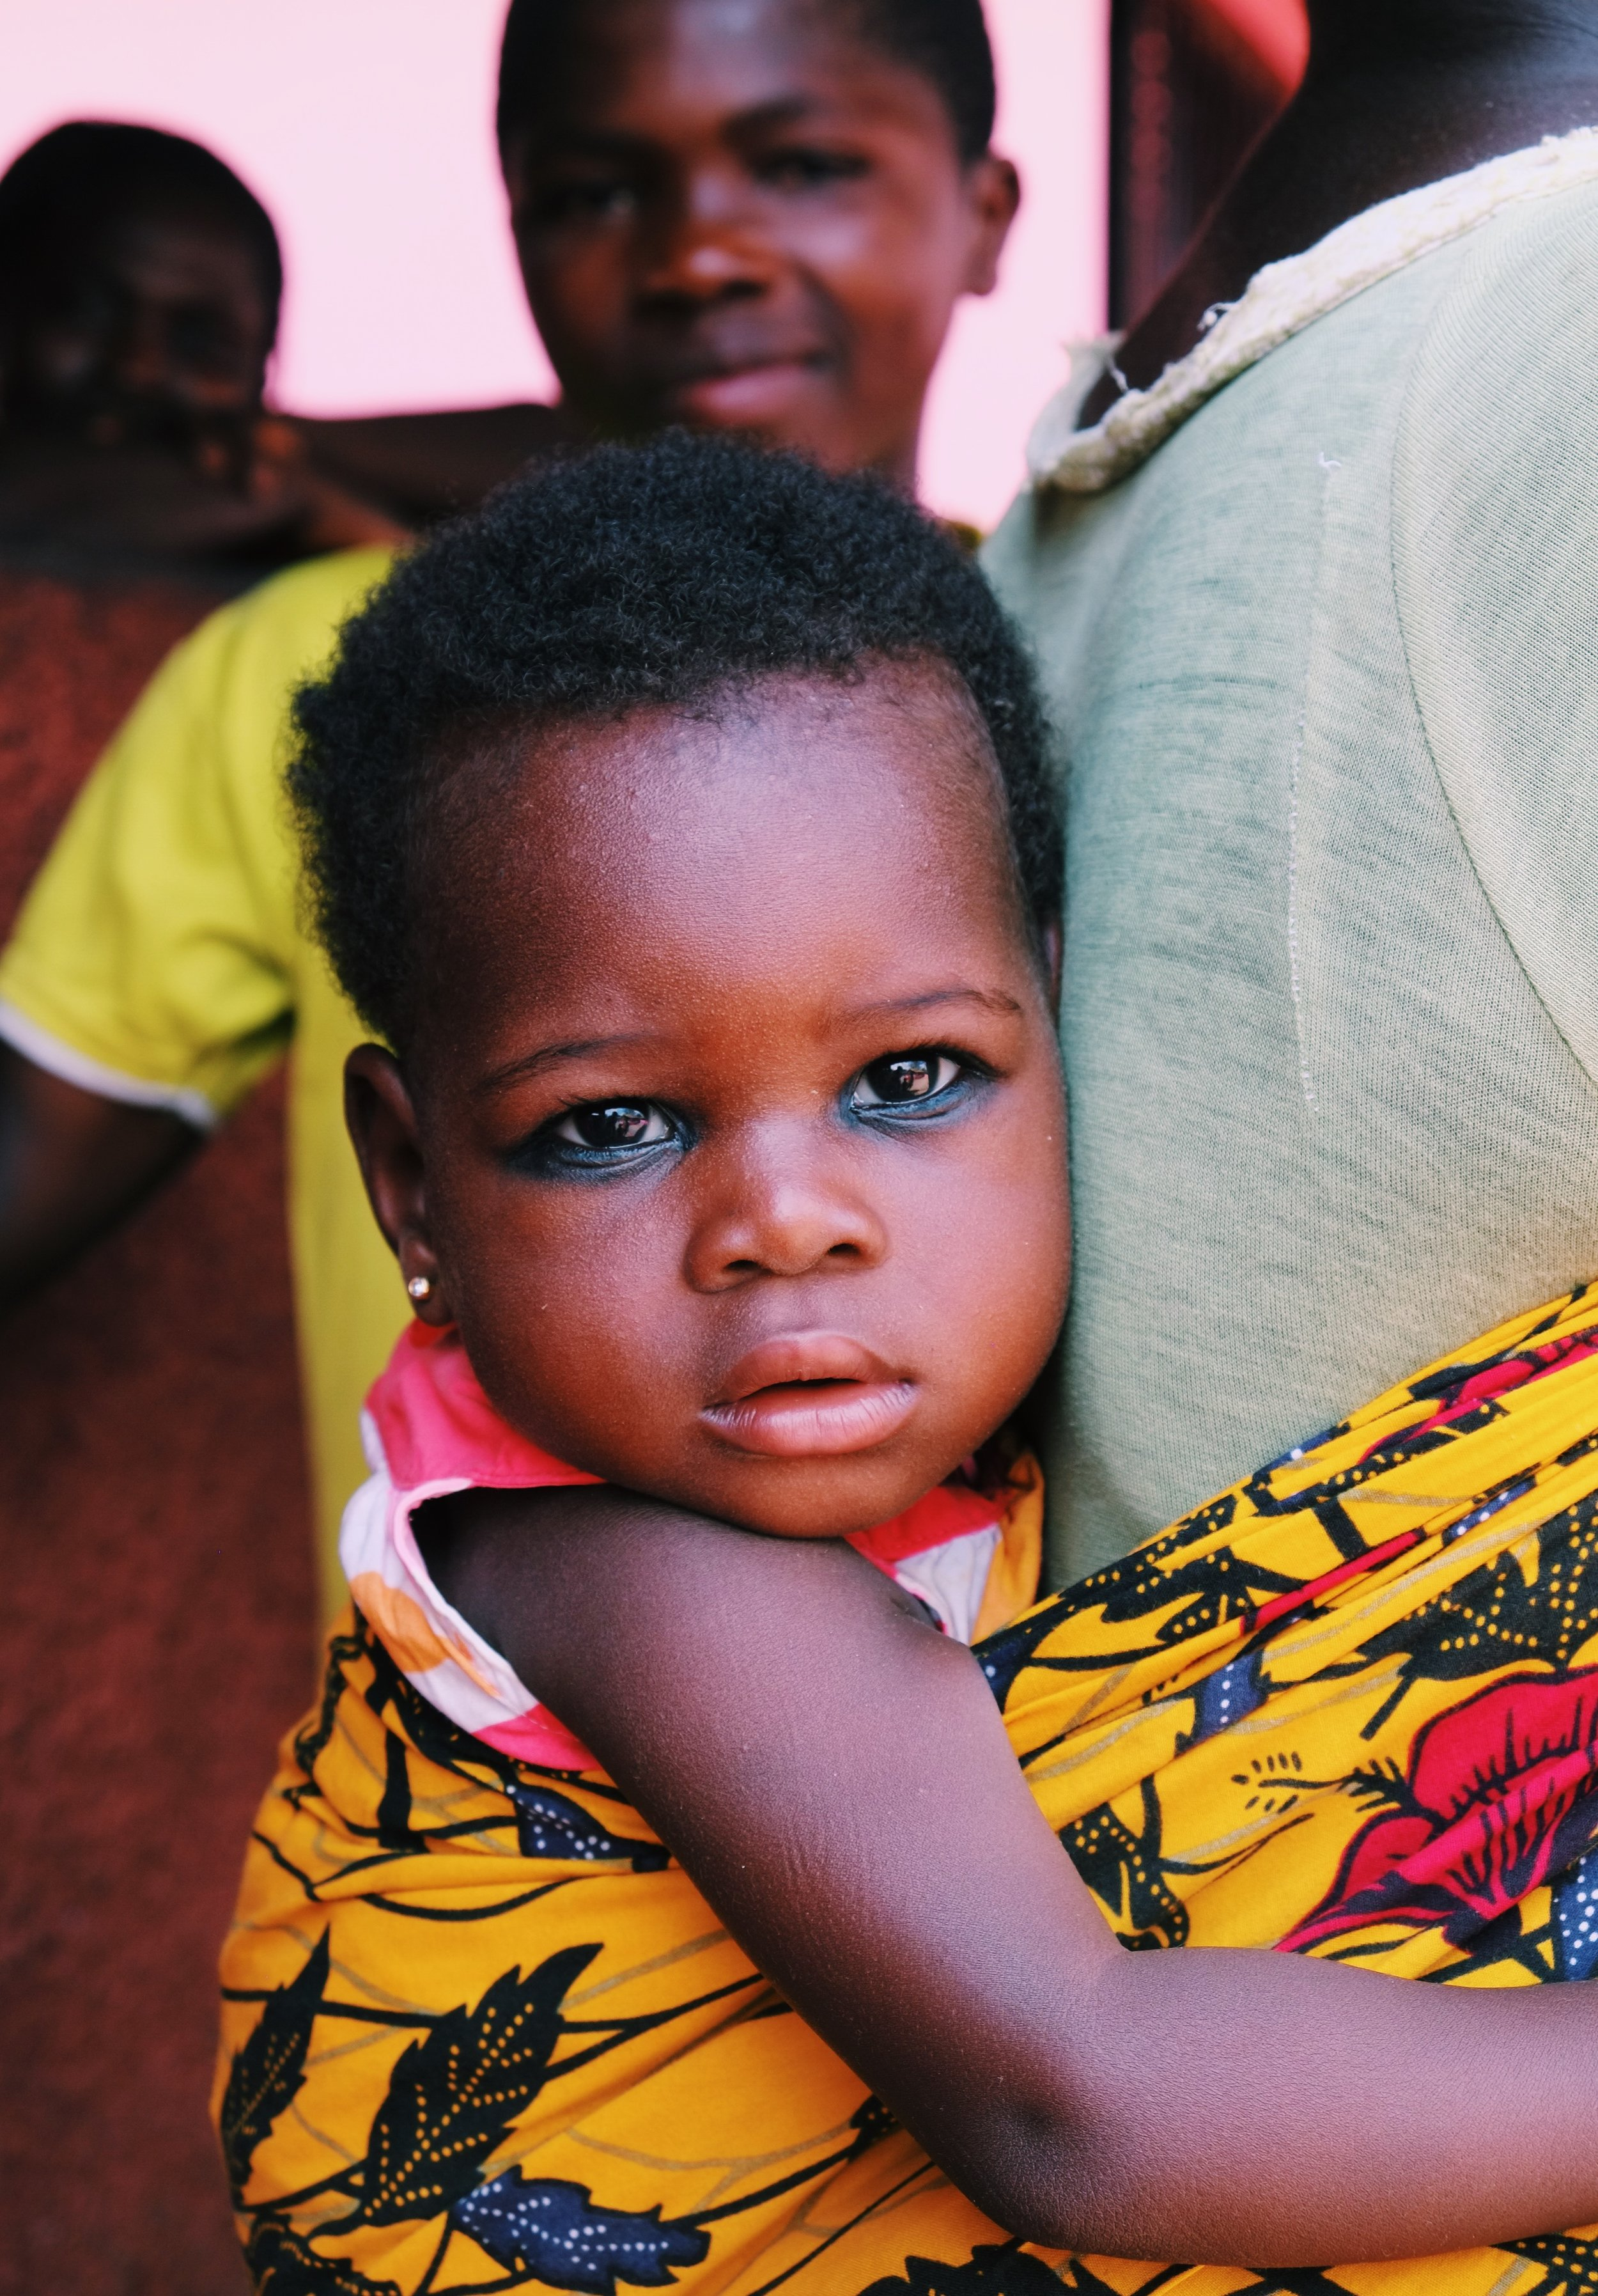 Child Yamoussoukro Ivory Coast Joost Bastmeijer.jpeg